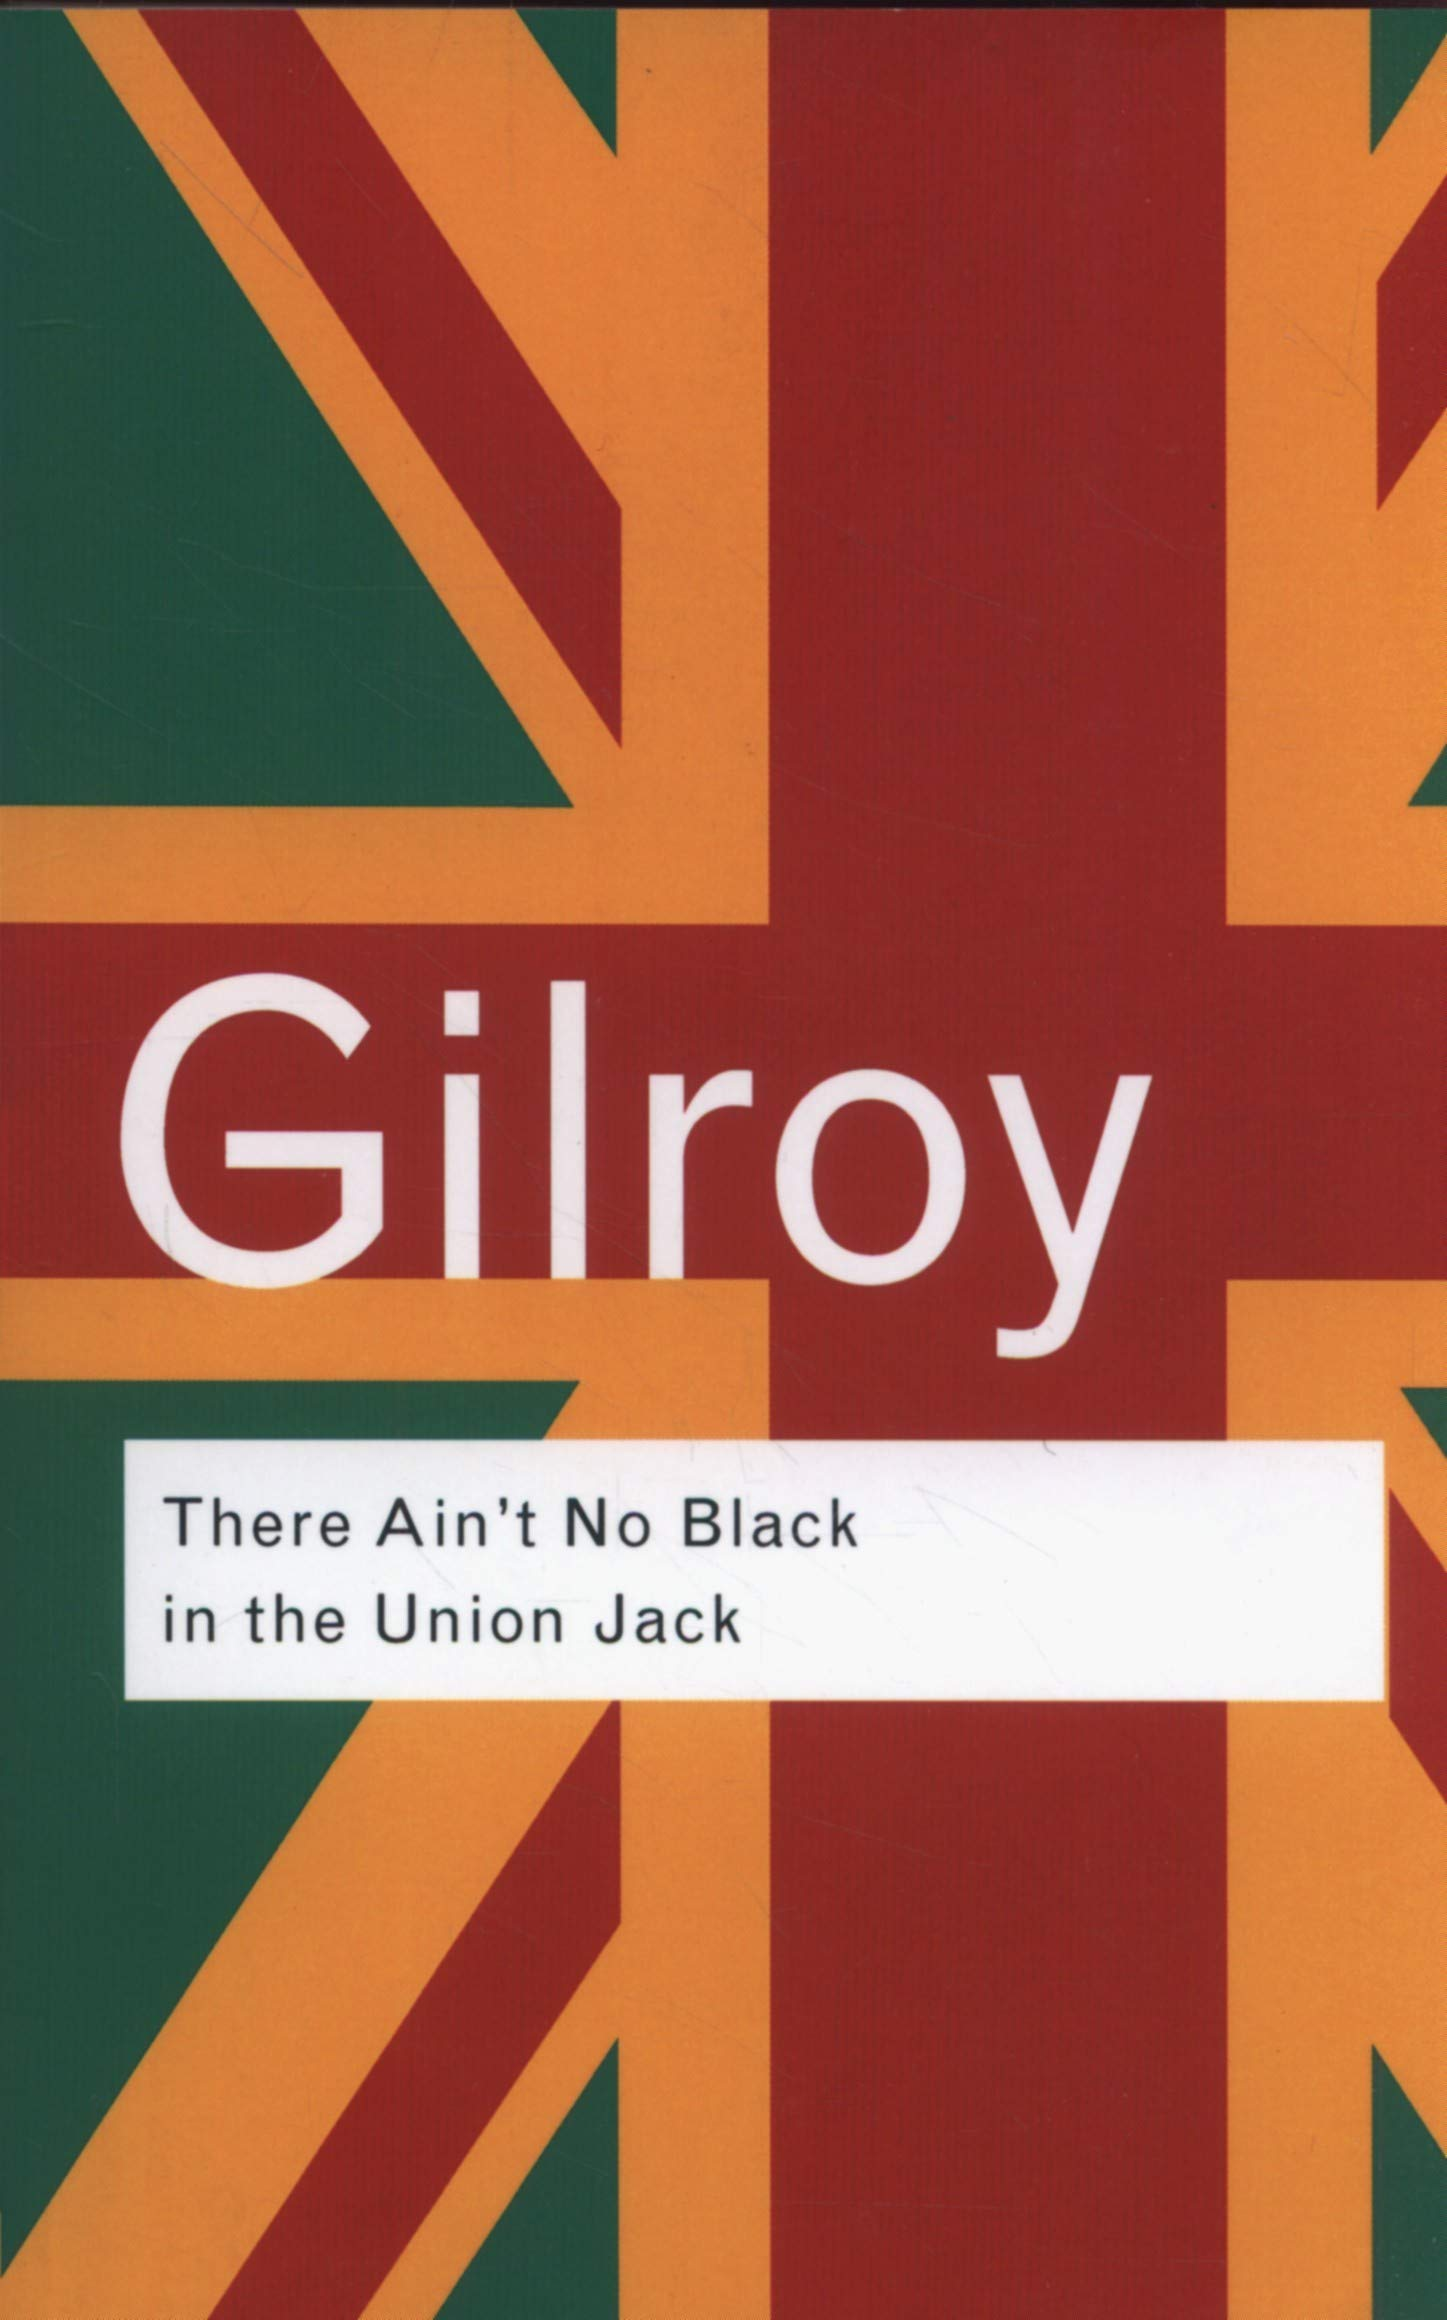 43313577b There Ain't No Black in the Union Jack: The Cultural Politics of ...